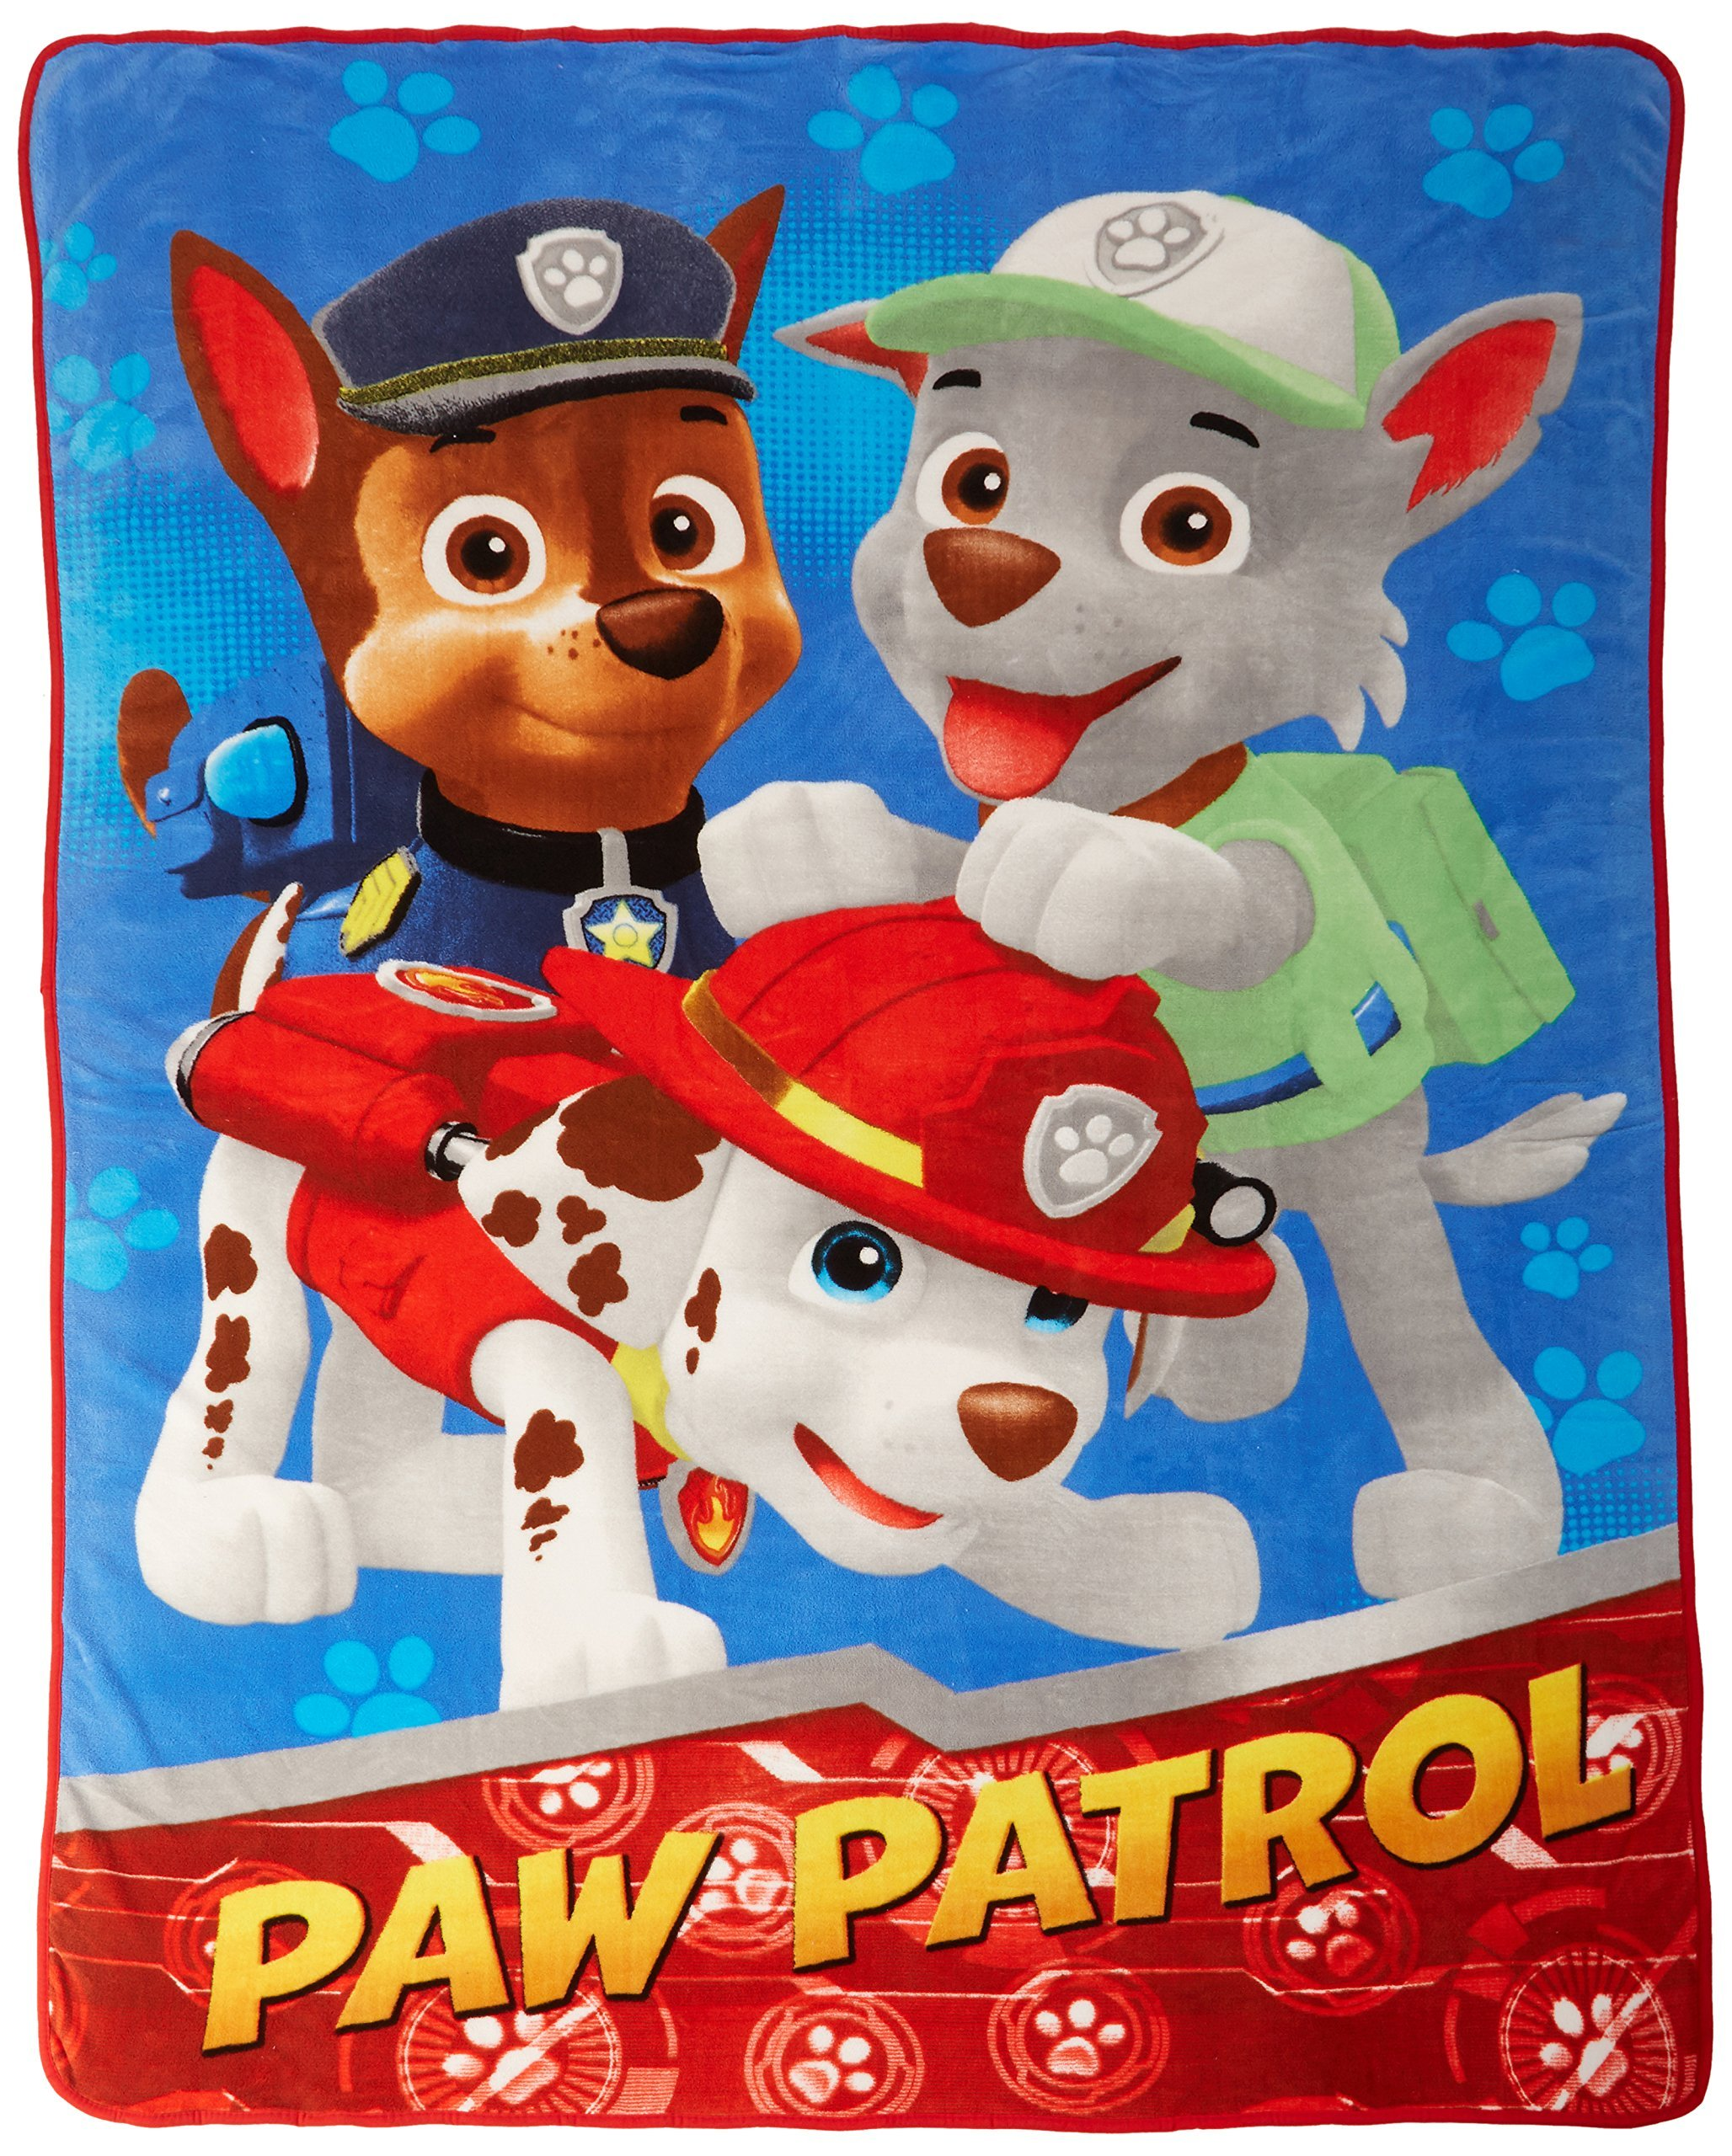 PAW Patrol All Paws on Deck Micro Raschel Blanket by Nickelodeon